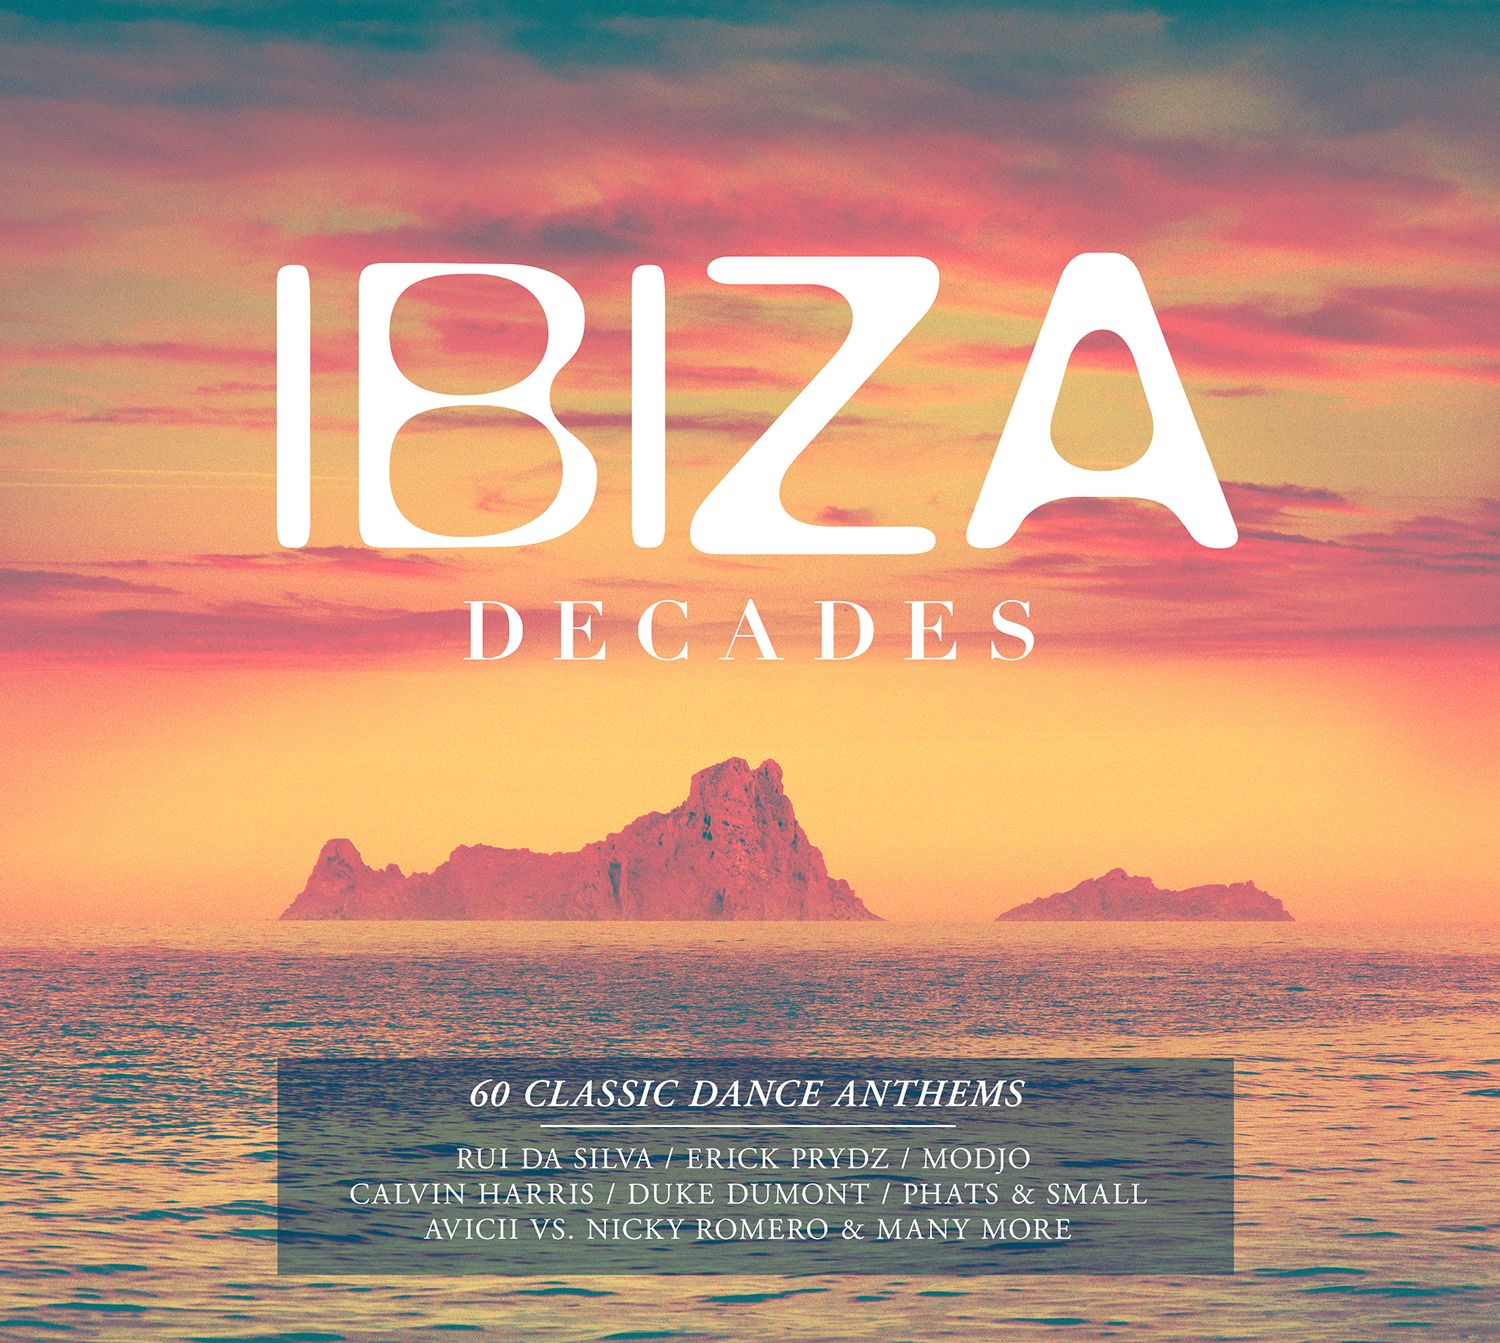 Ibiza decades album cover design for universal music for House music tracklist